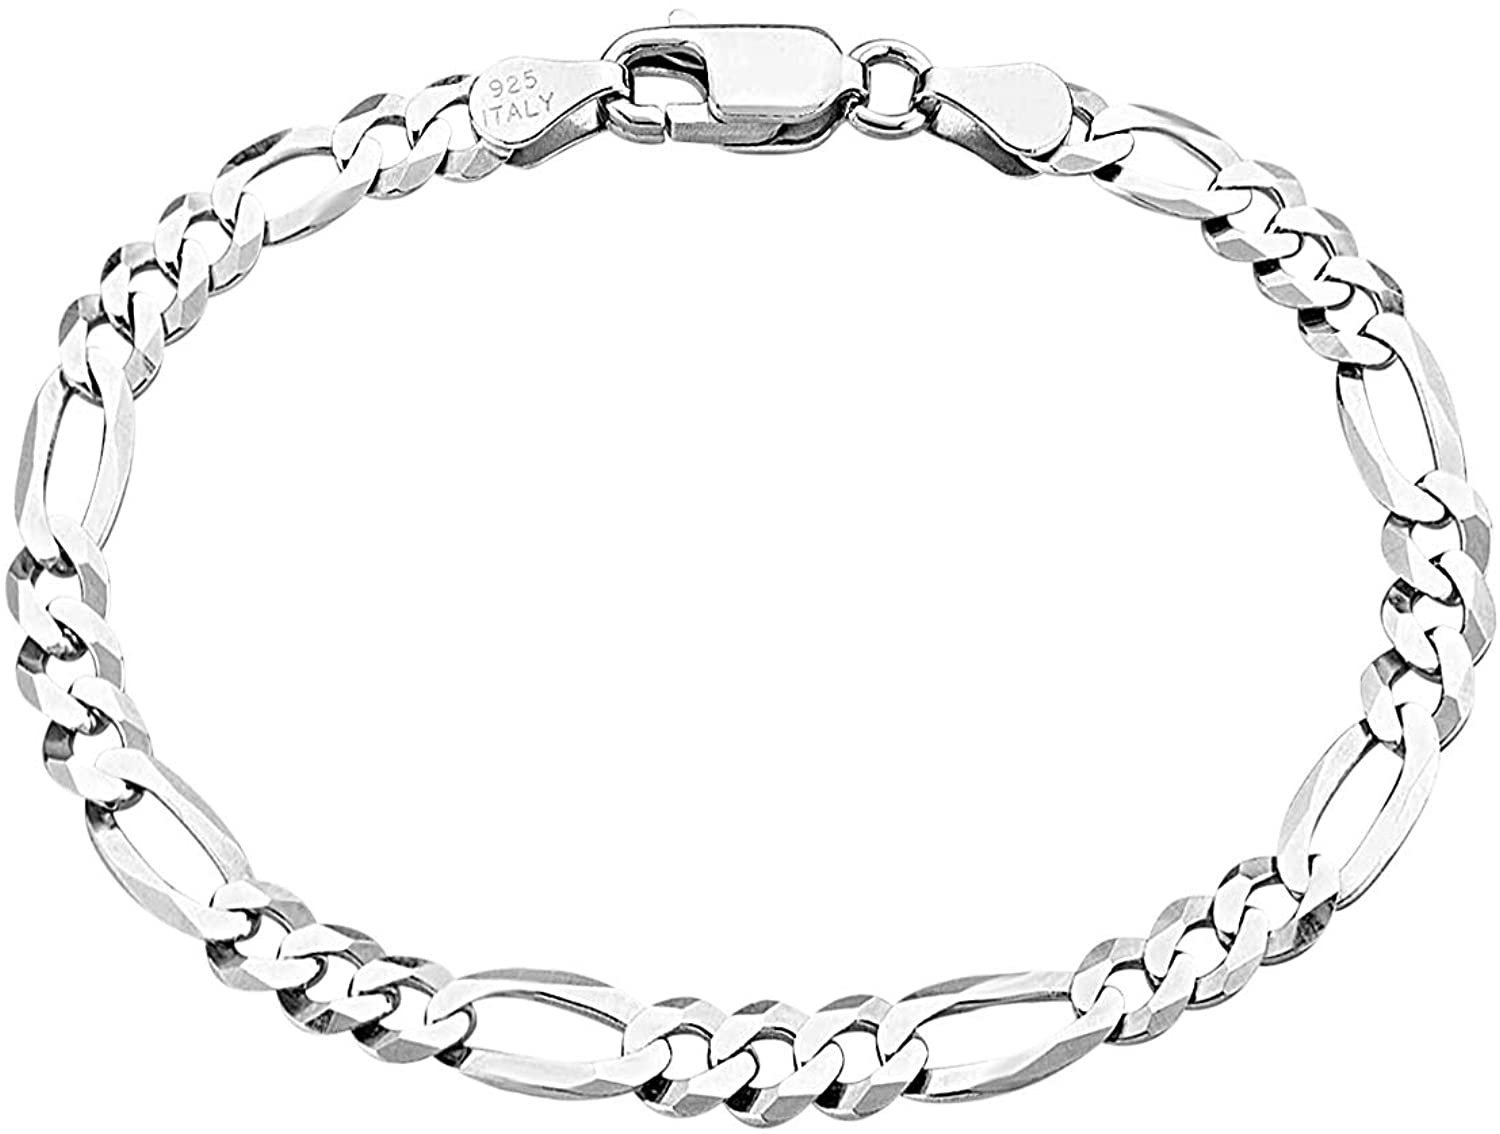 Savlano 925 Sterling Silver Italian Solid Figaro Link Chain Bracelet With Gift Box For Men & Women - Made in Italy